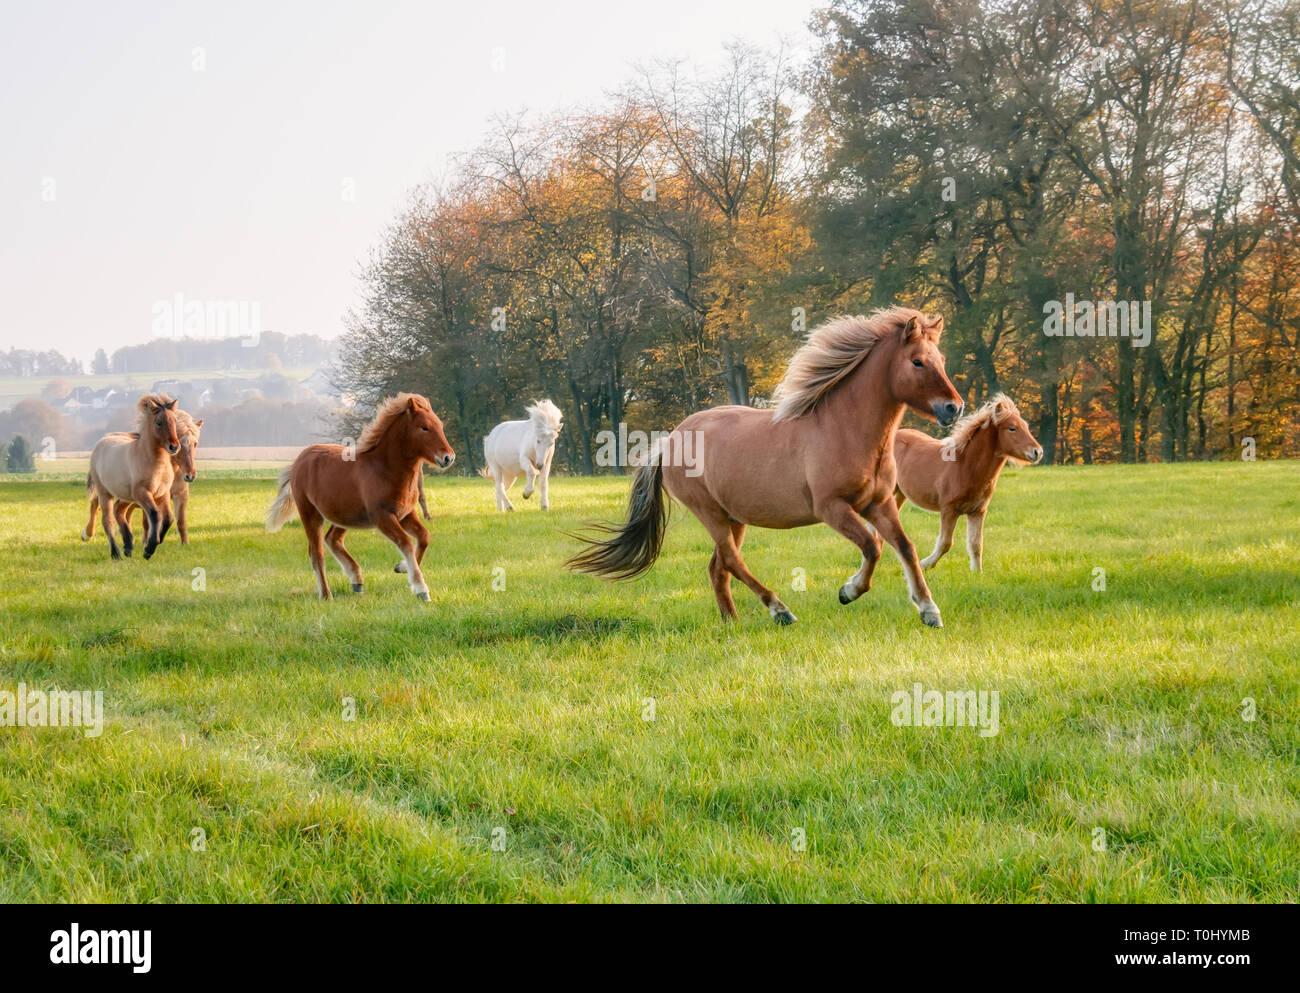 Herd of Icelandic horses, mares with foals, running together at a gallop across a green grass meadow in autumn, Germany - Stock Image